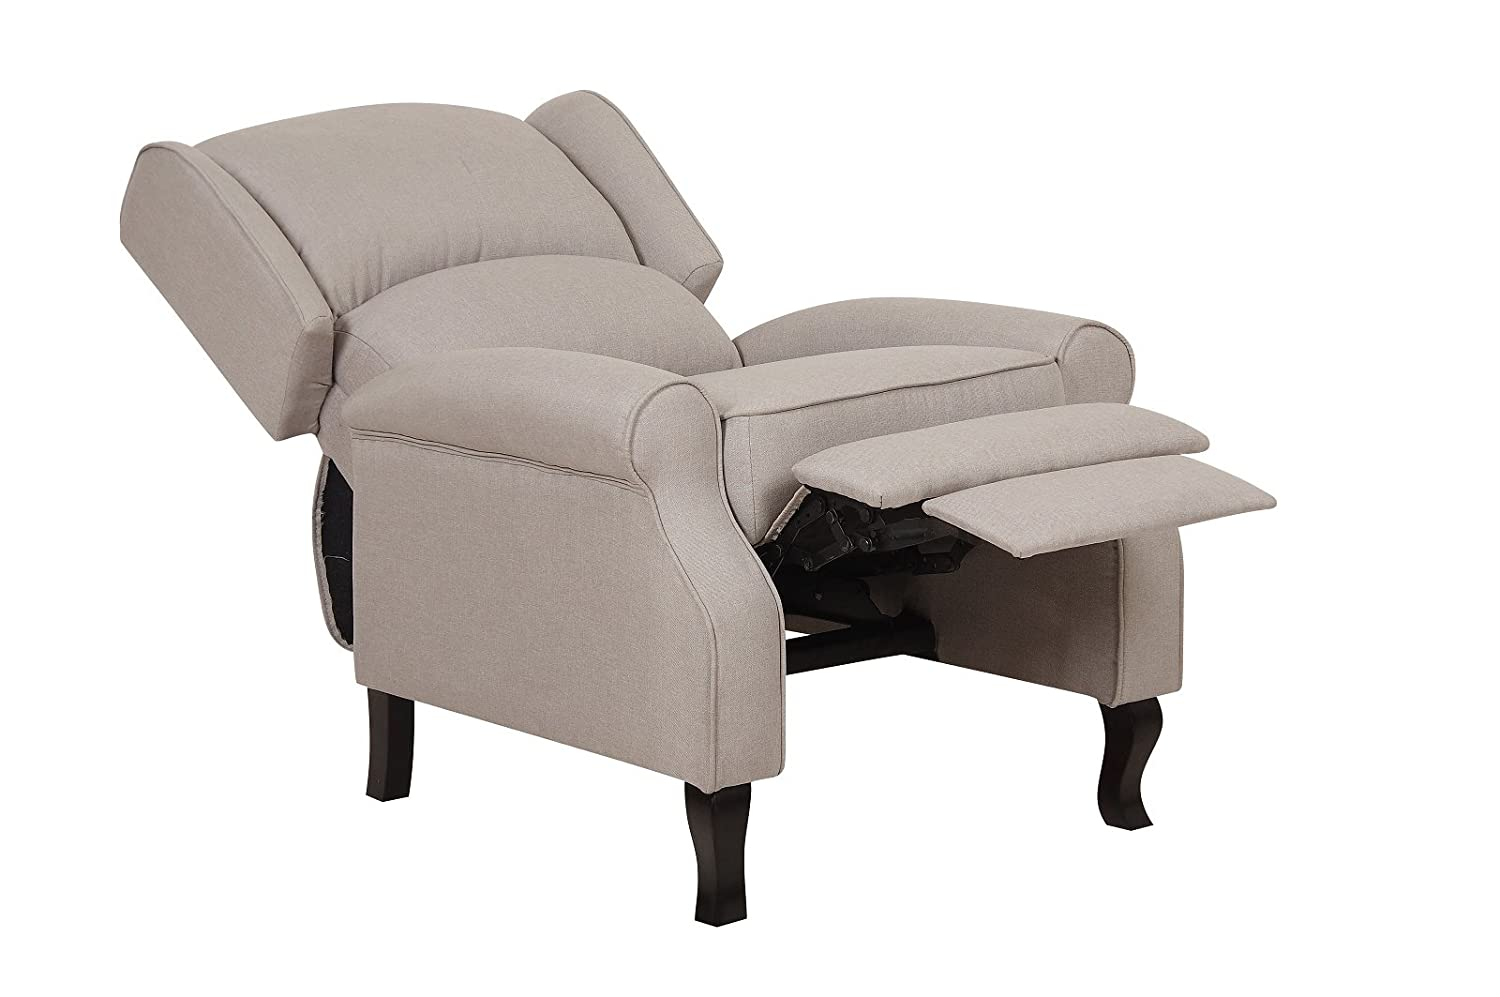 Charmant Amazon.com: US Pride Furniture Contemporary Linen Fabric Accent Recliner  Chair, Beige: Kitchen U0026 Dining